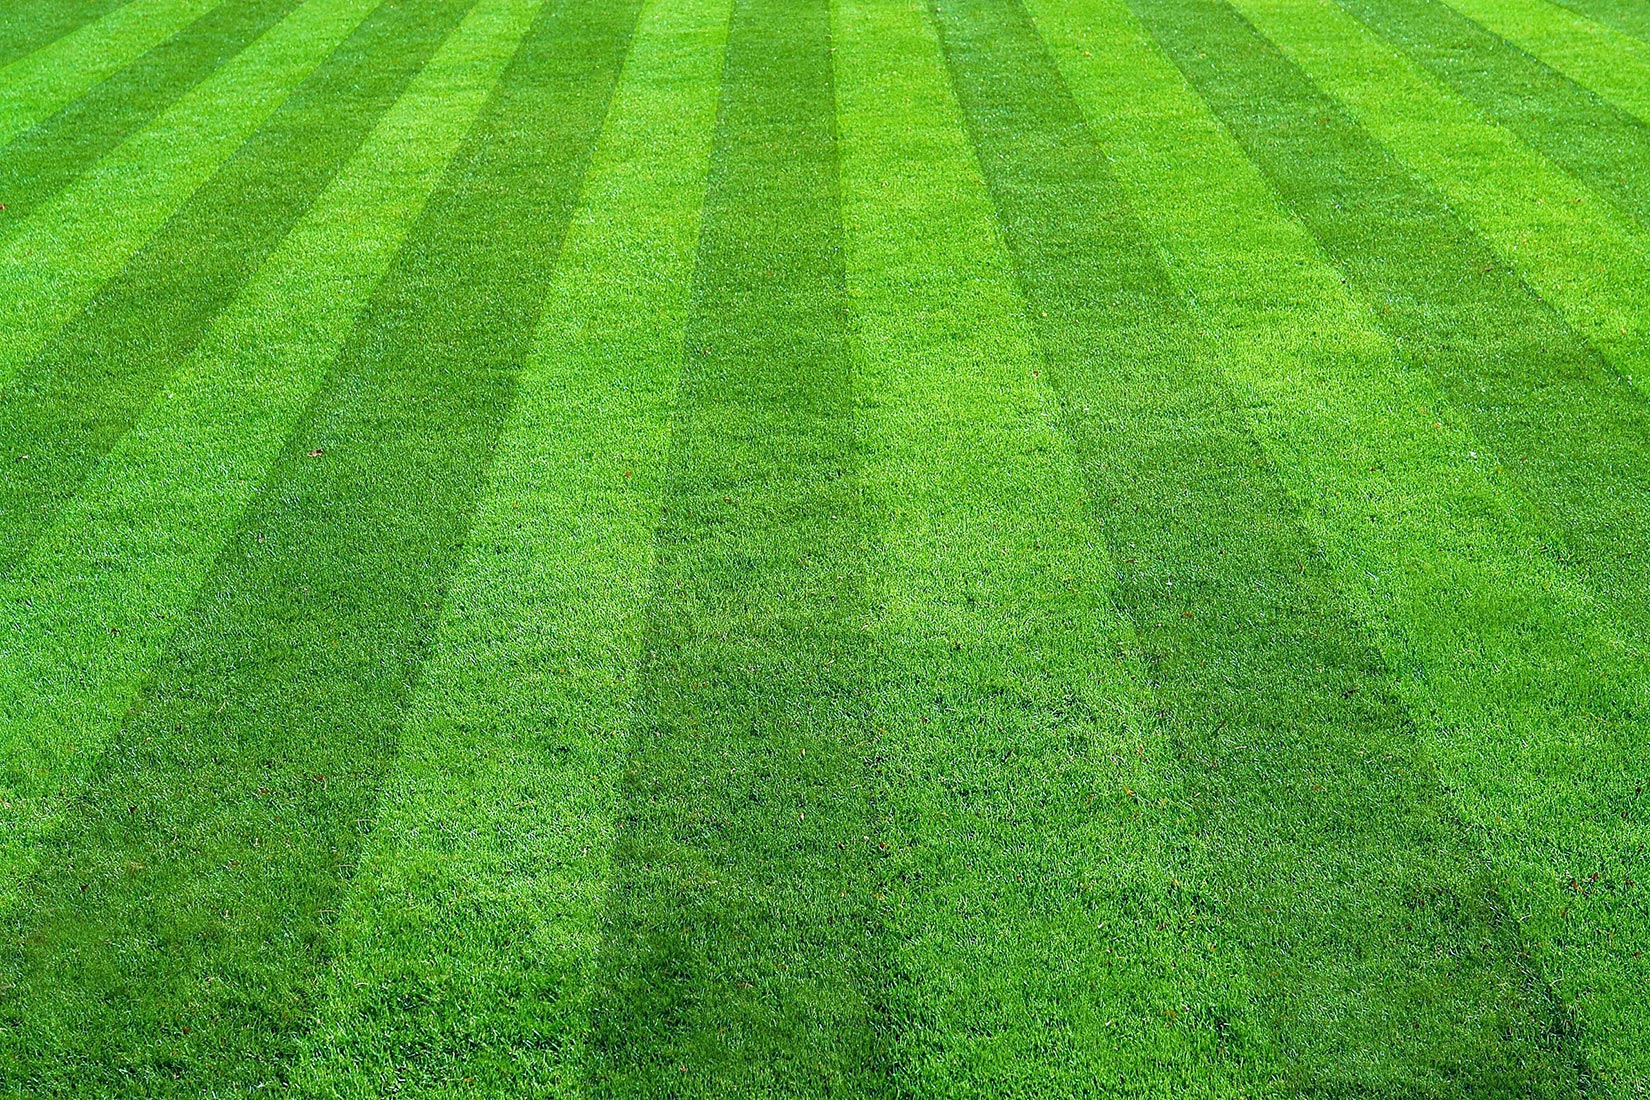 How To Maintain Your Lawn Properly